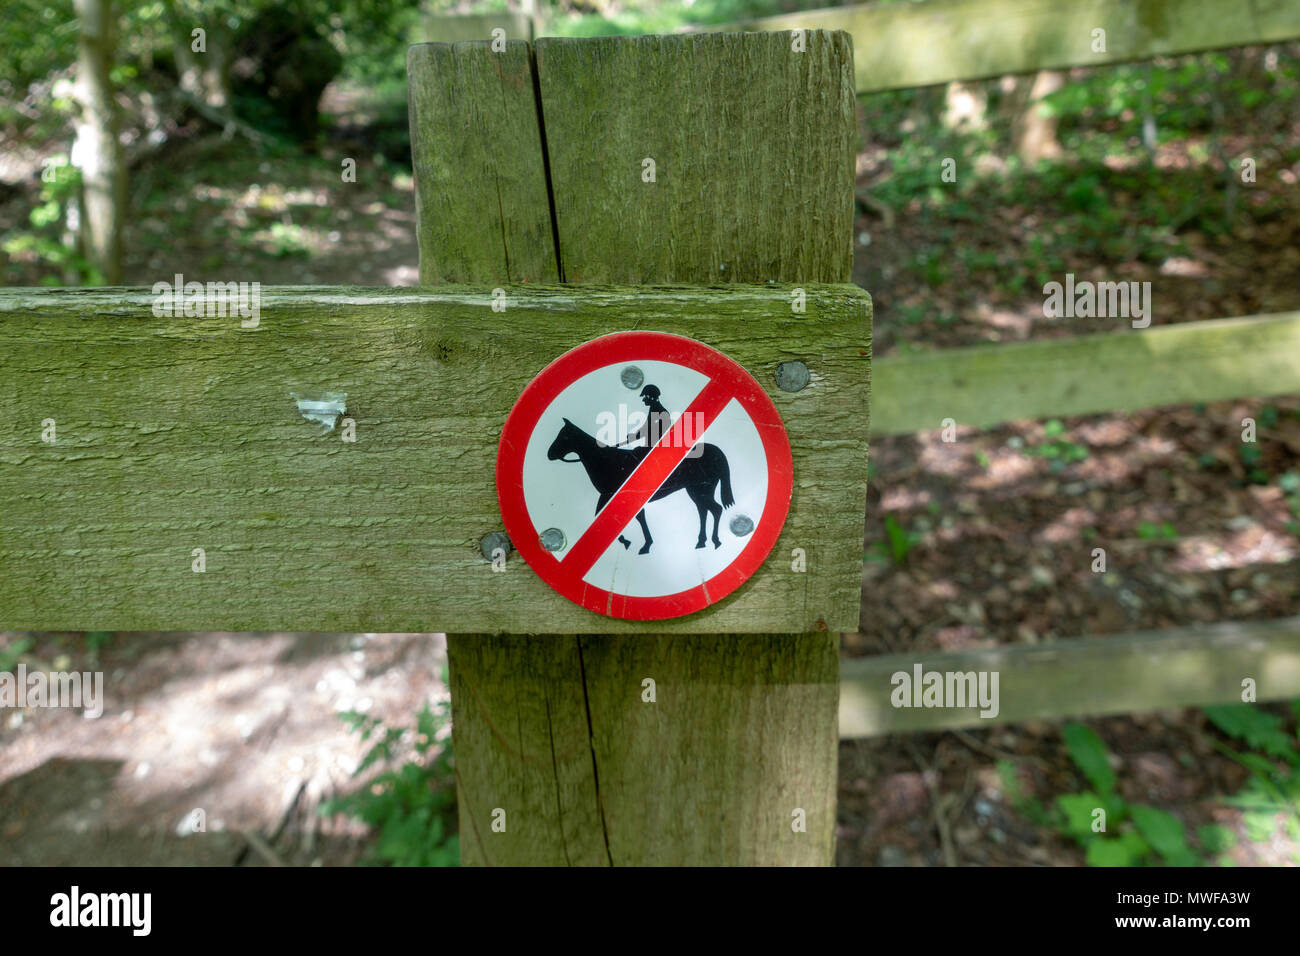 A sign indicting that horses are not allowed in the Chilterns area of natural beauty, UK - Stock Image